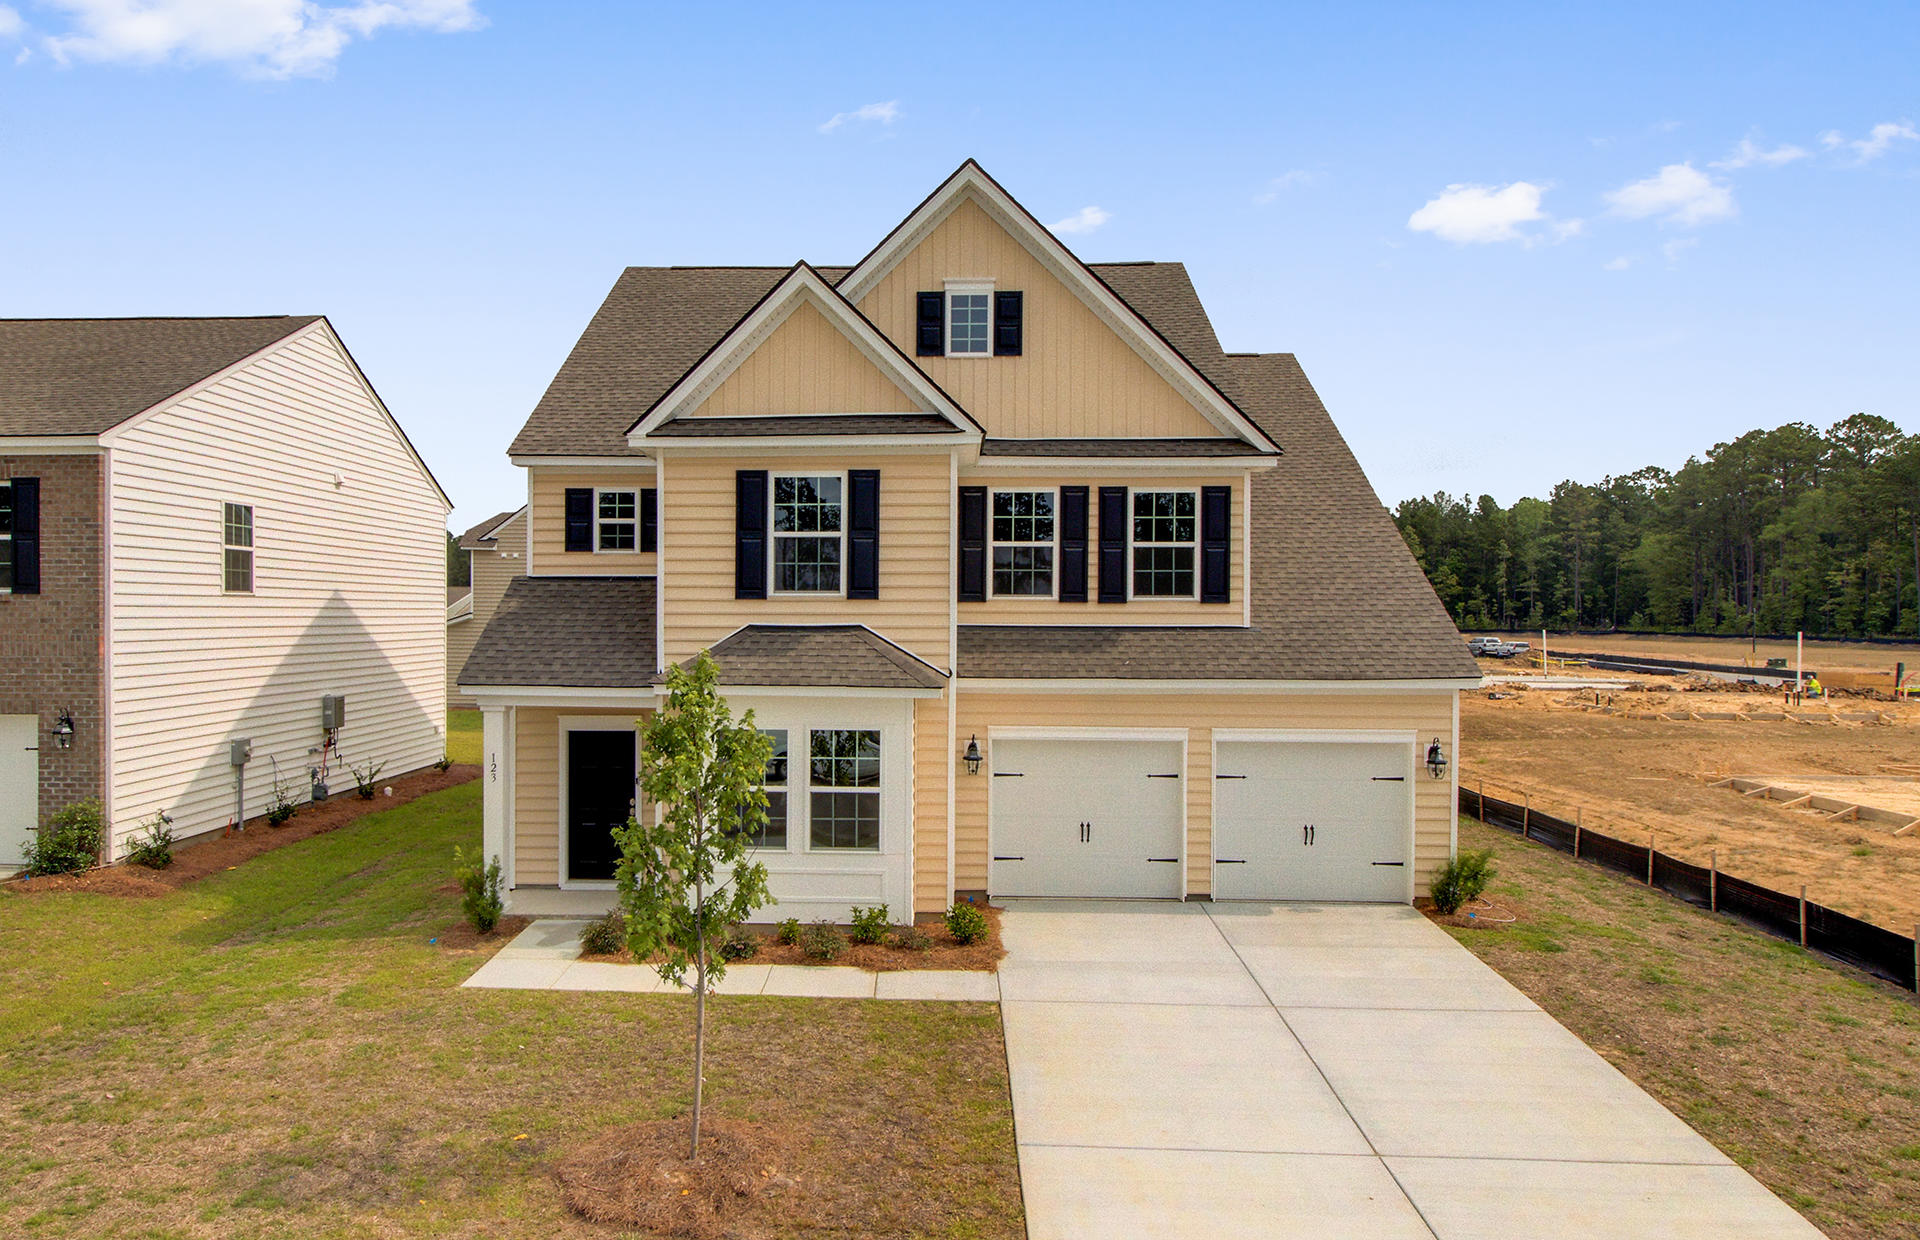 709 Squire Pope Road Summerville, Sc 29486